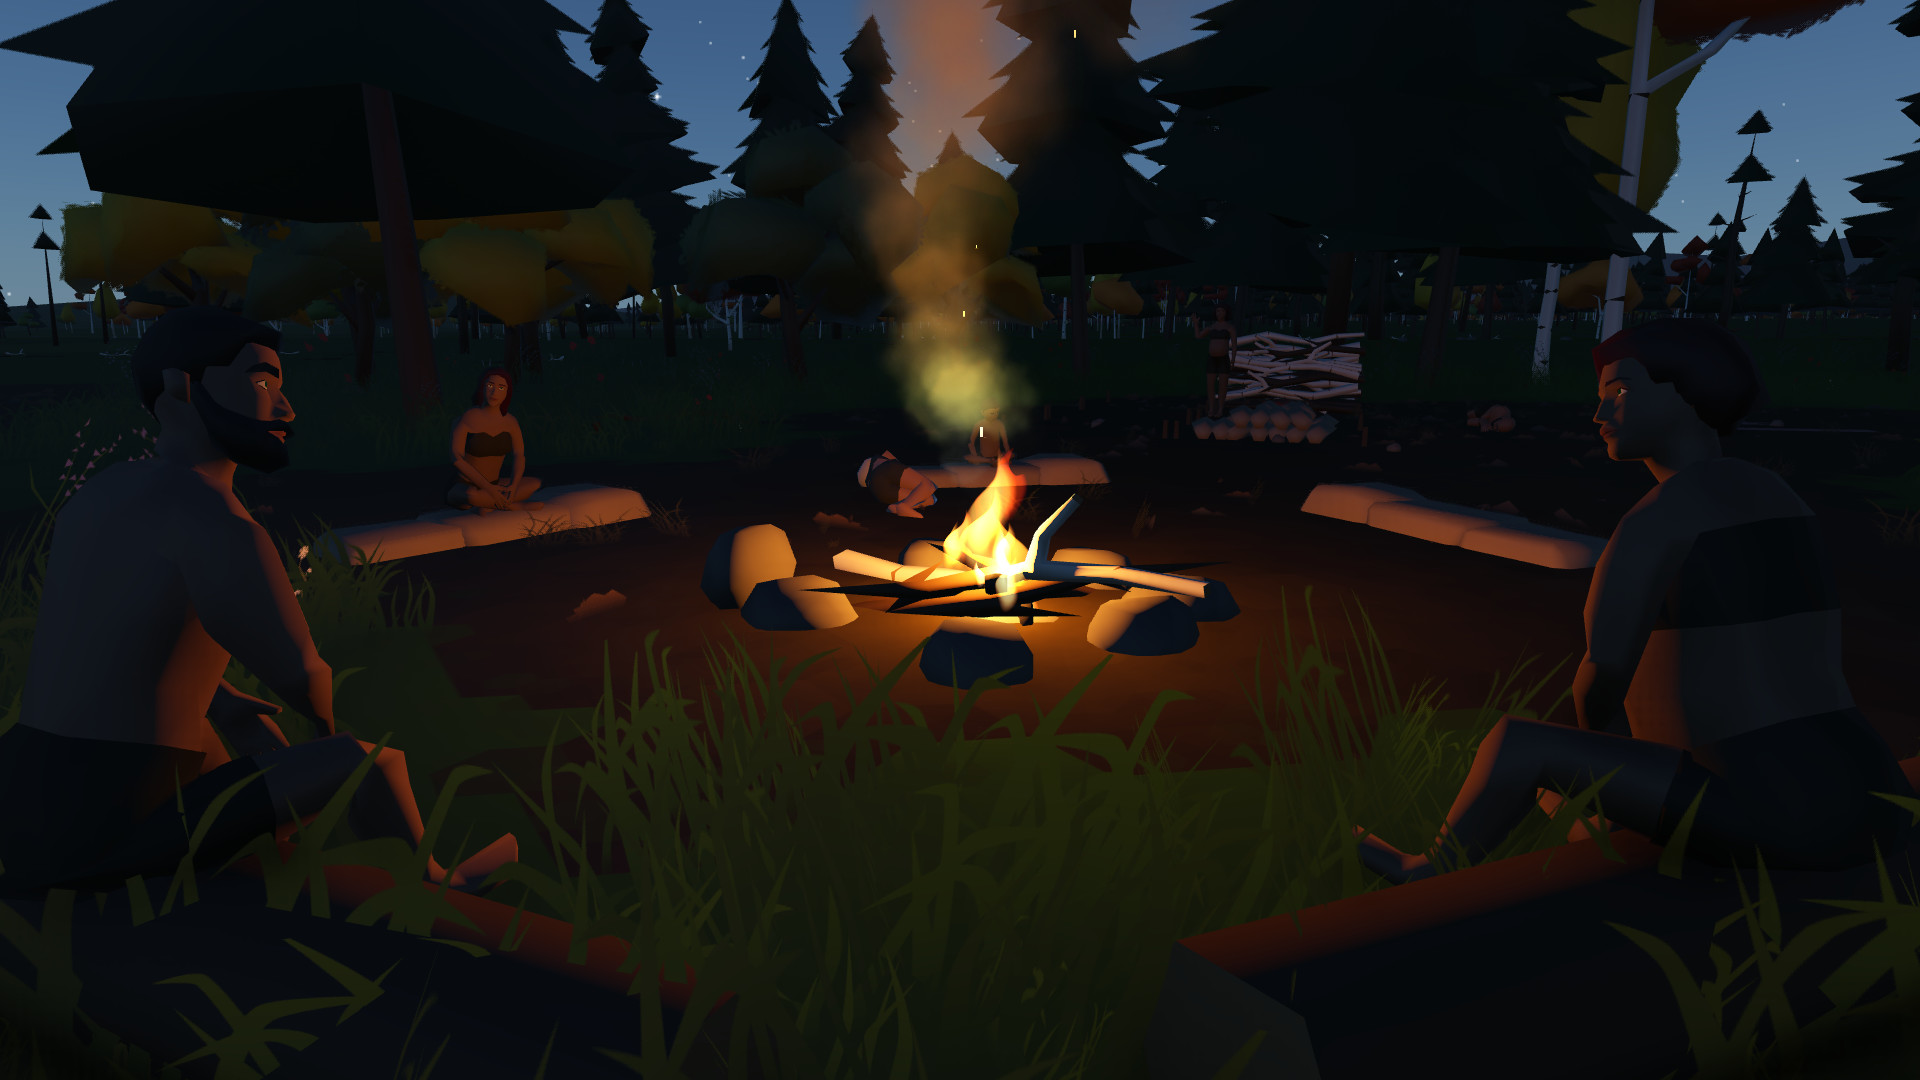 Video Devblog #49 - Gathering around the fire feature image